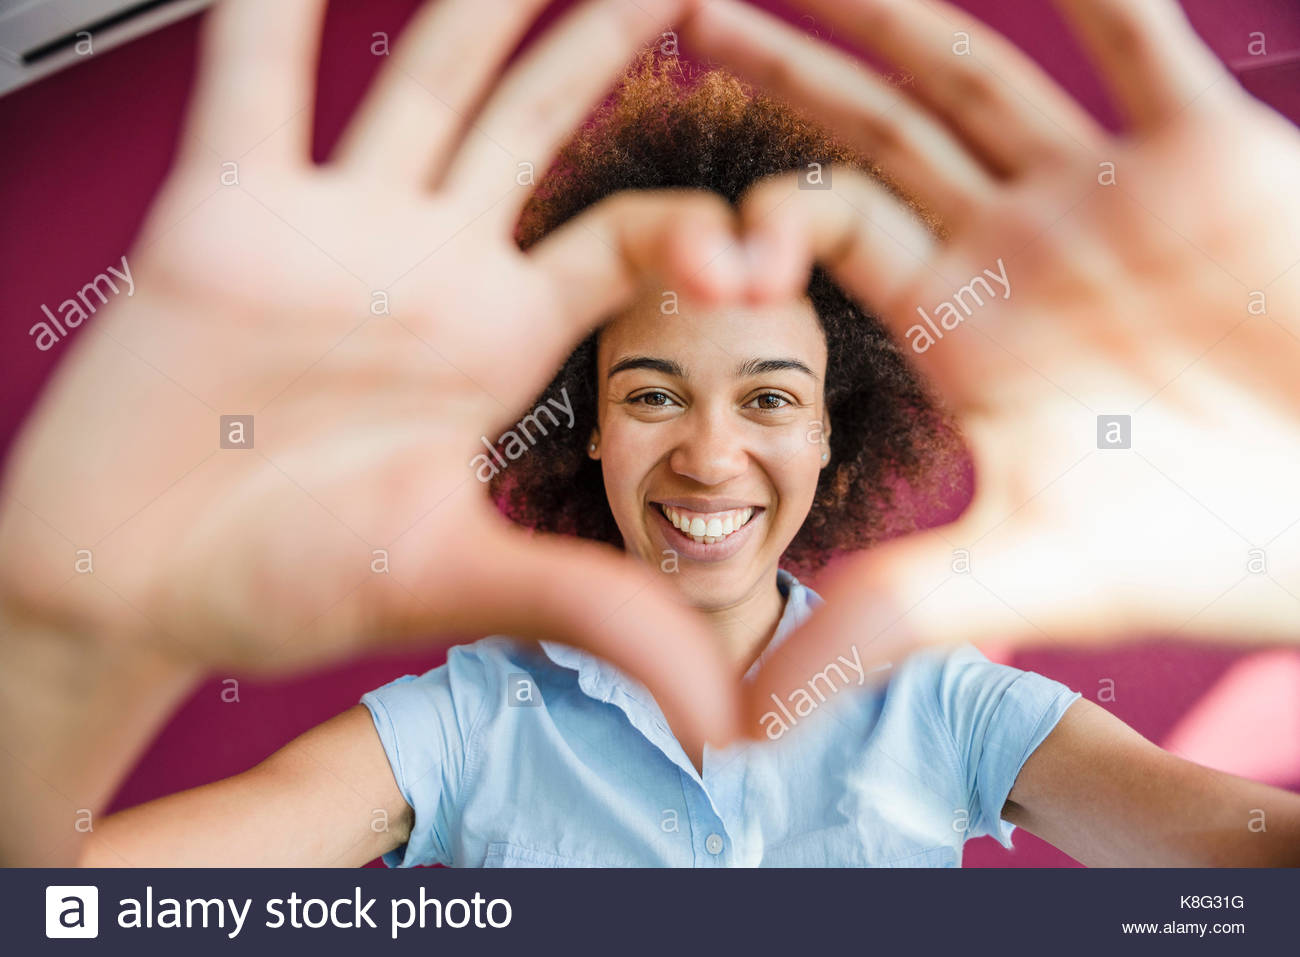 Portrait of young woman making heart shape with hands and fingers - Stock Image